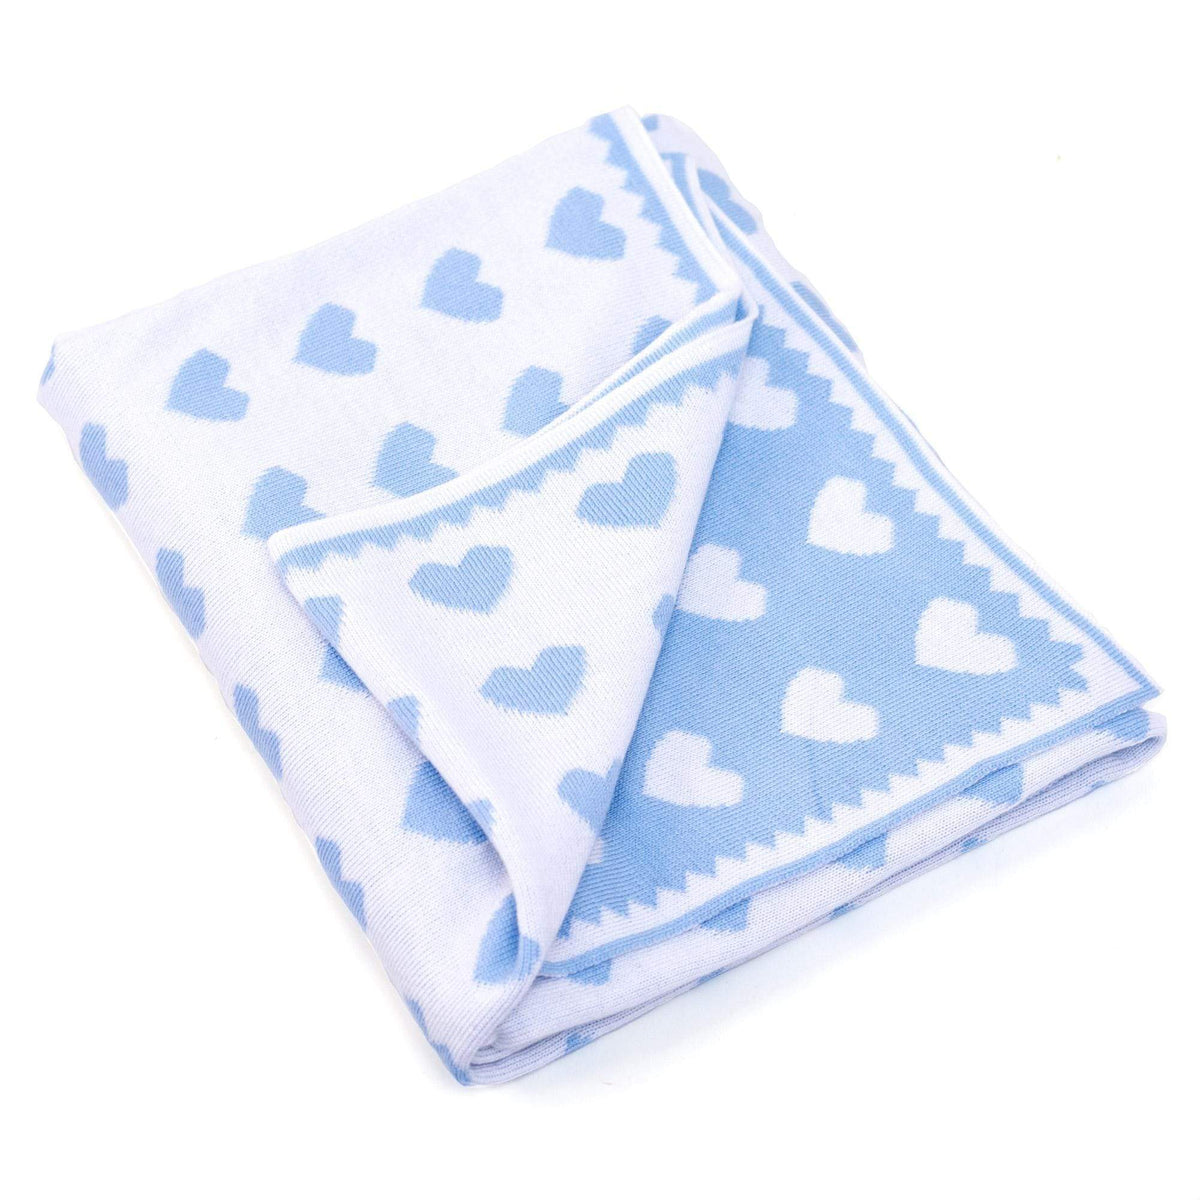 Baby Gift Blue baby blanket with hearts Blue Hearts Soft Baby Blanket